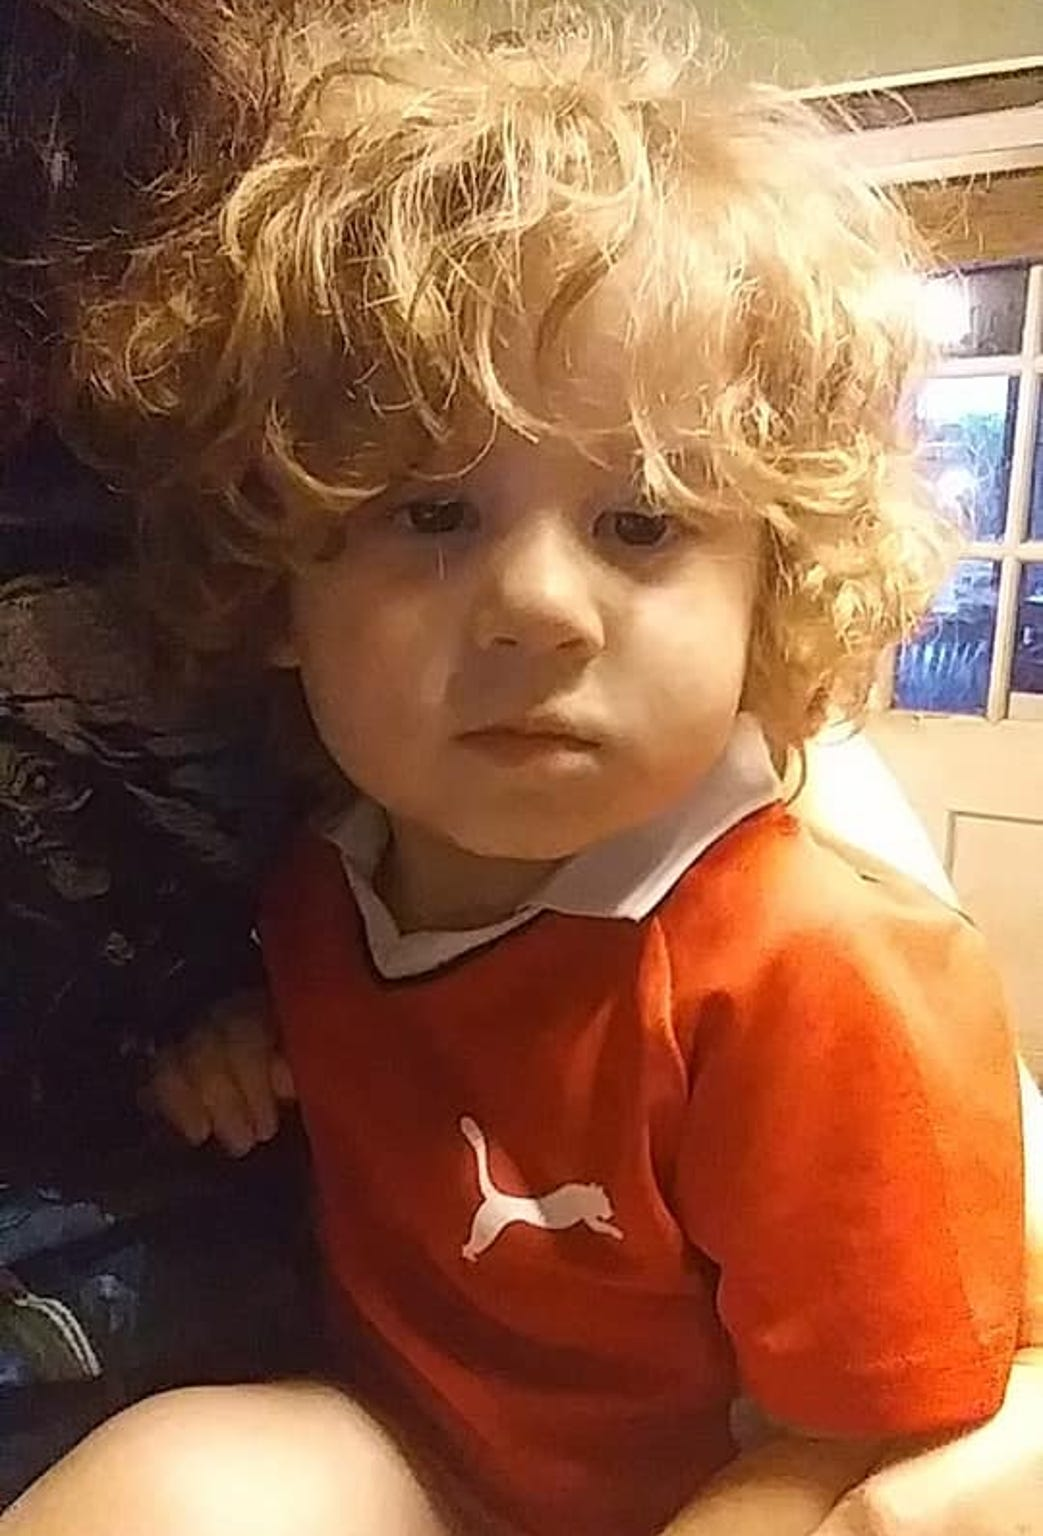 Dante Mullinix was 2 years old when he suffered fatal injuries in York. But he experienced other tragedies in his life. Tyree Bowie, 40, of York, is charged with first- and third-degree murder and endangering the welfare of a child in his death.